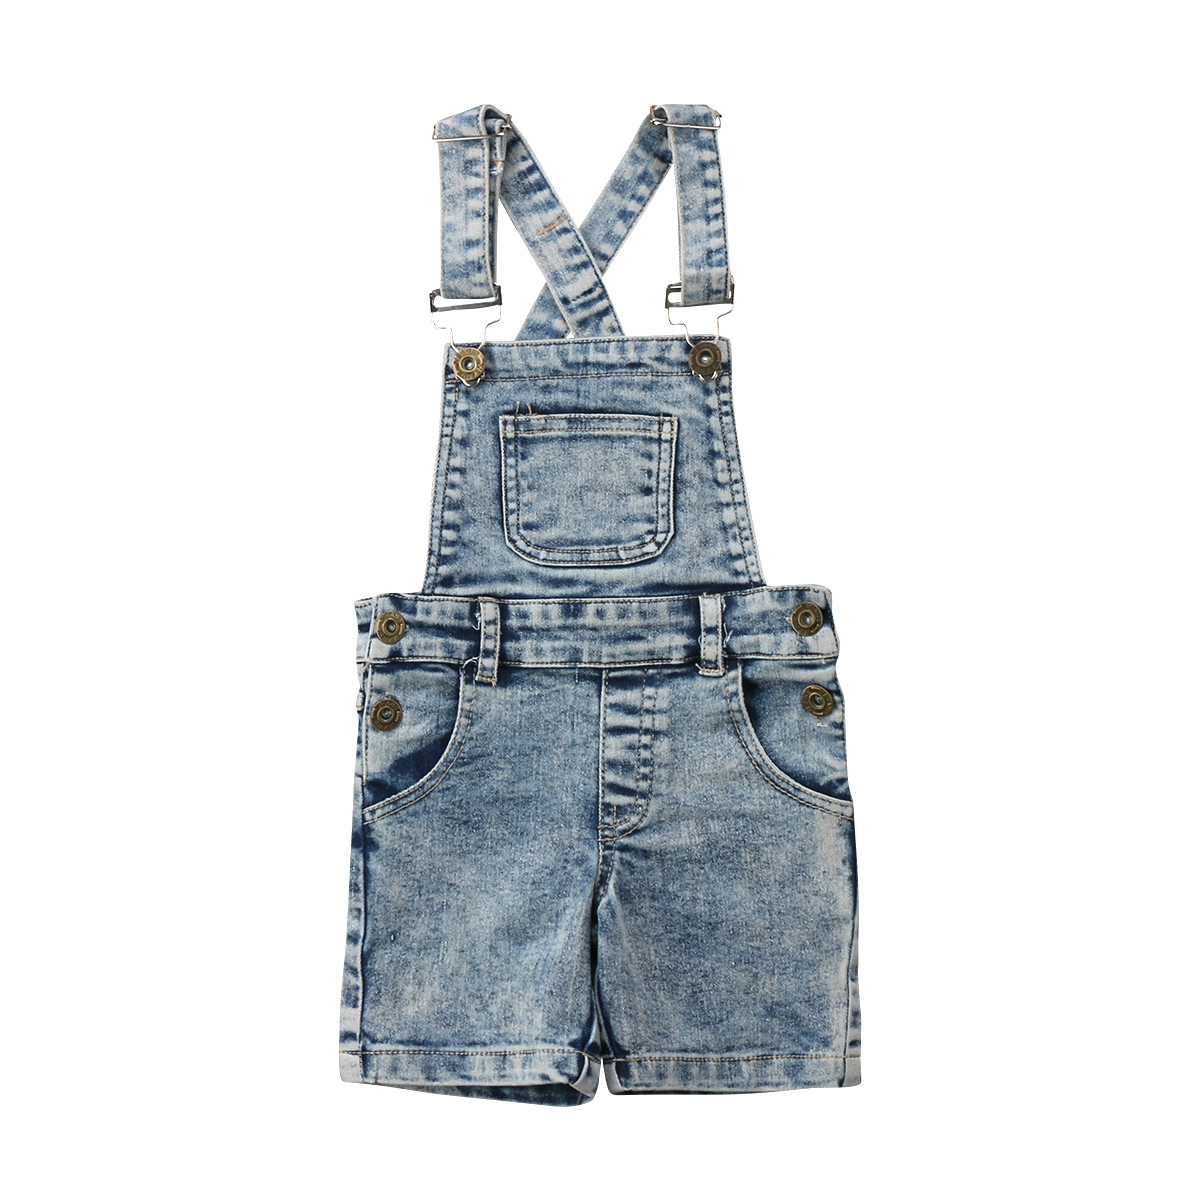 0 6T Fashion Toddler Kids Baby Boys Girls Denim Bib Pants Overalls Jean Outfits Sleeveless Denim Shorts Jumpsuit Outfits Summer in Overalls from Mother Kids